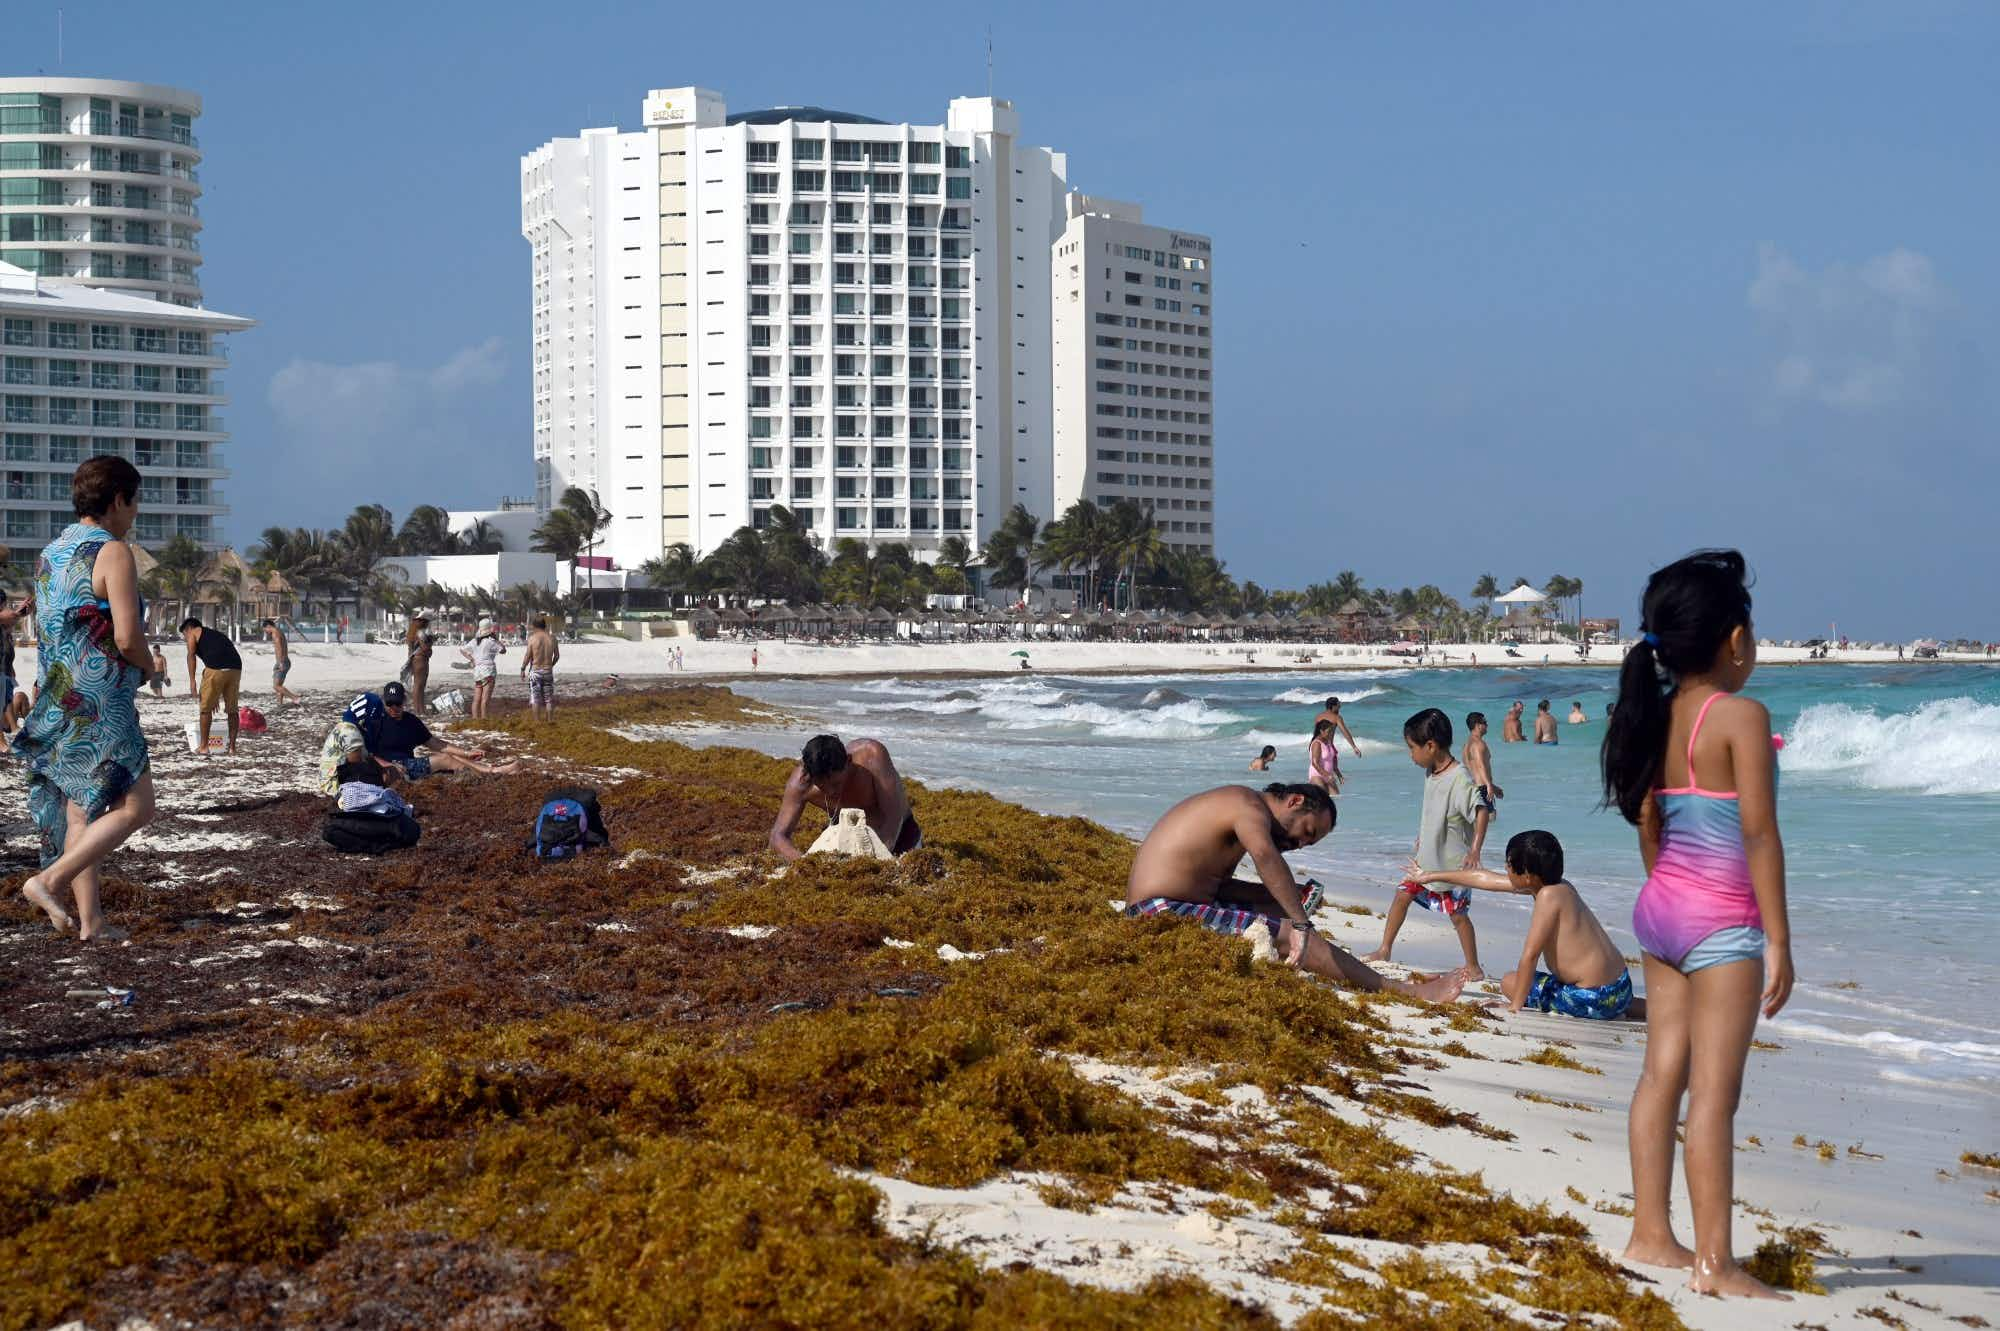 Stinky seaweed is coating beaches and coastlines in these popular vacation spots